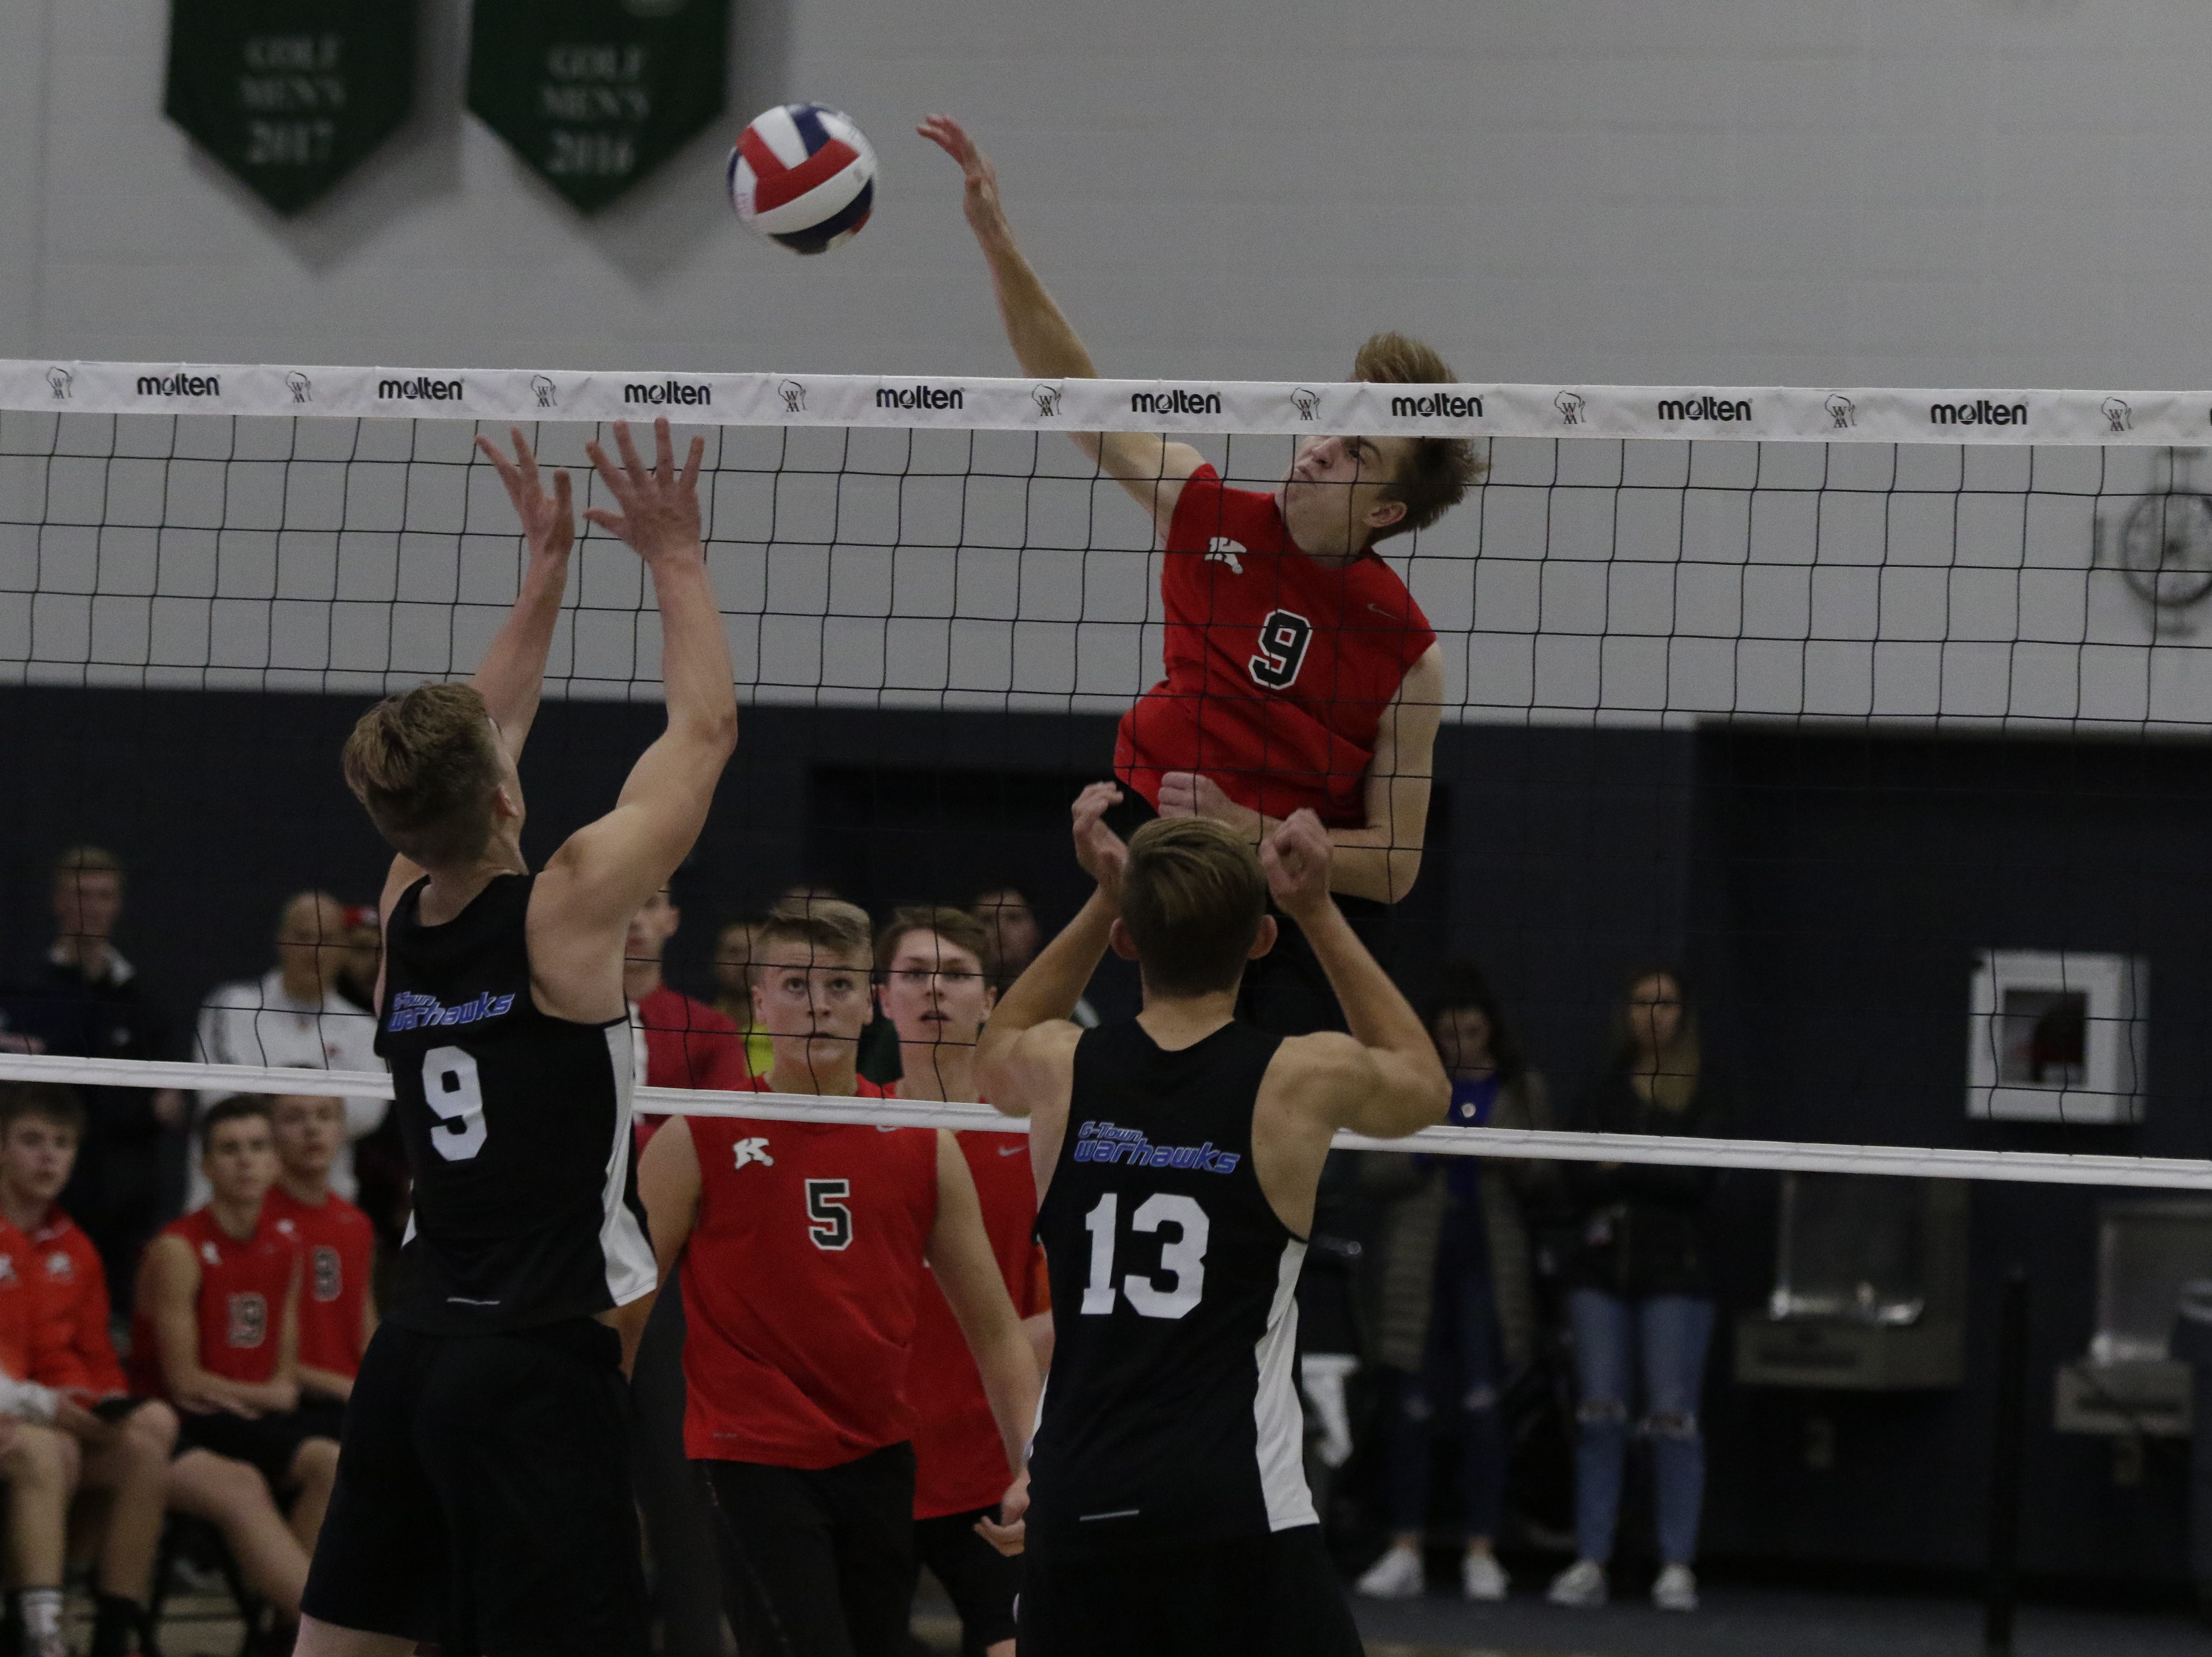 KimberlyÕs Tommy Clausz spikes against Germantown.  Kimberly Papermakers played Germantown Warhawks in Division 1 WIAA State Boys Volleyball Championship, Saturday, November 10, 2018 at Wisconsin Lutheran College in Milwaukee, Wis. Joe Sienkiewicz/USA Today NETWORK-Wisconsin